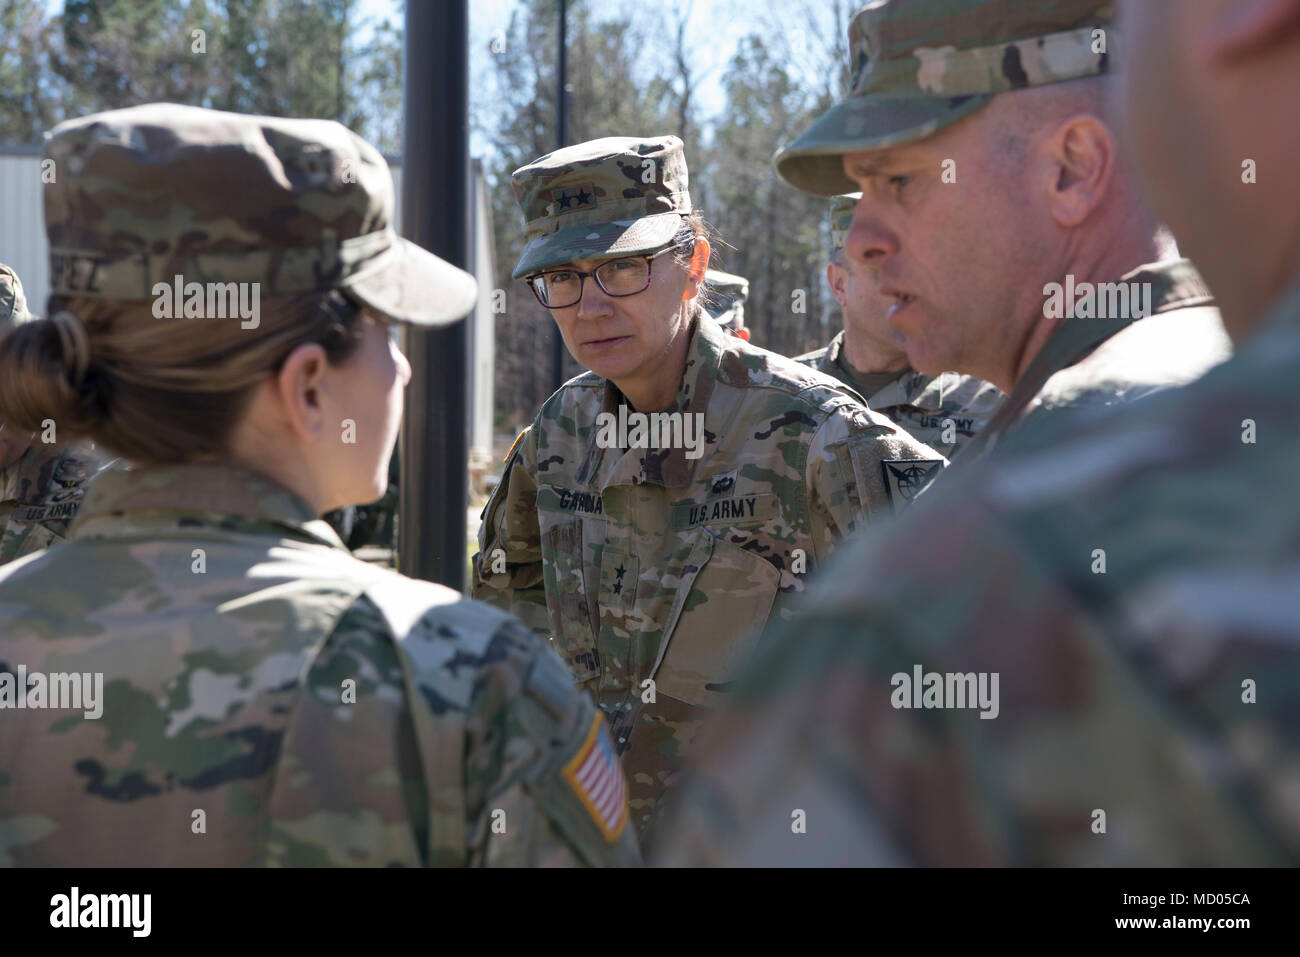 535th Military Police Battalion High Resolution Stock Photography And Images Alamy